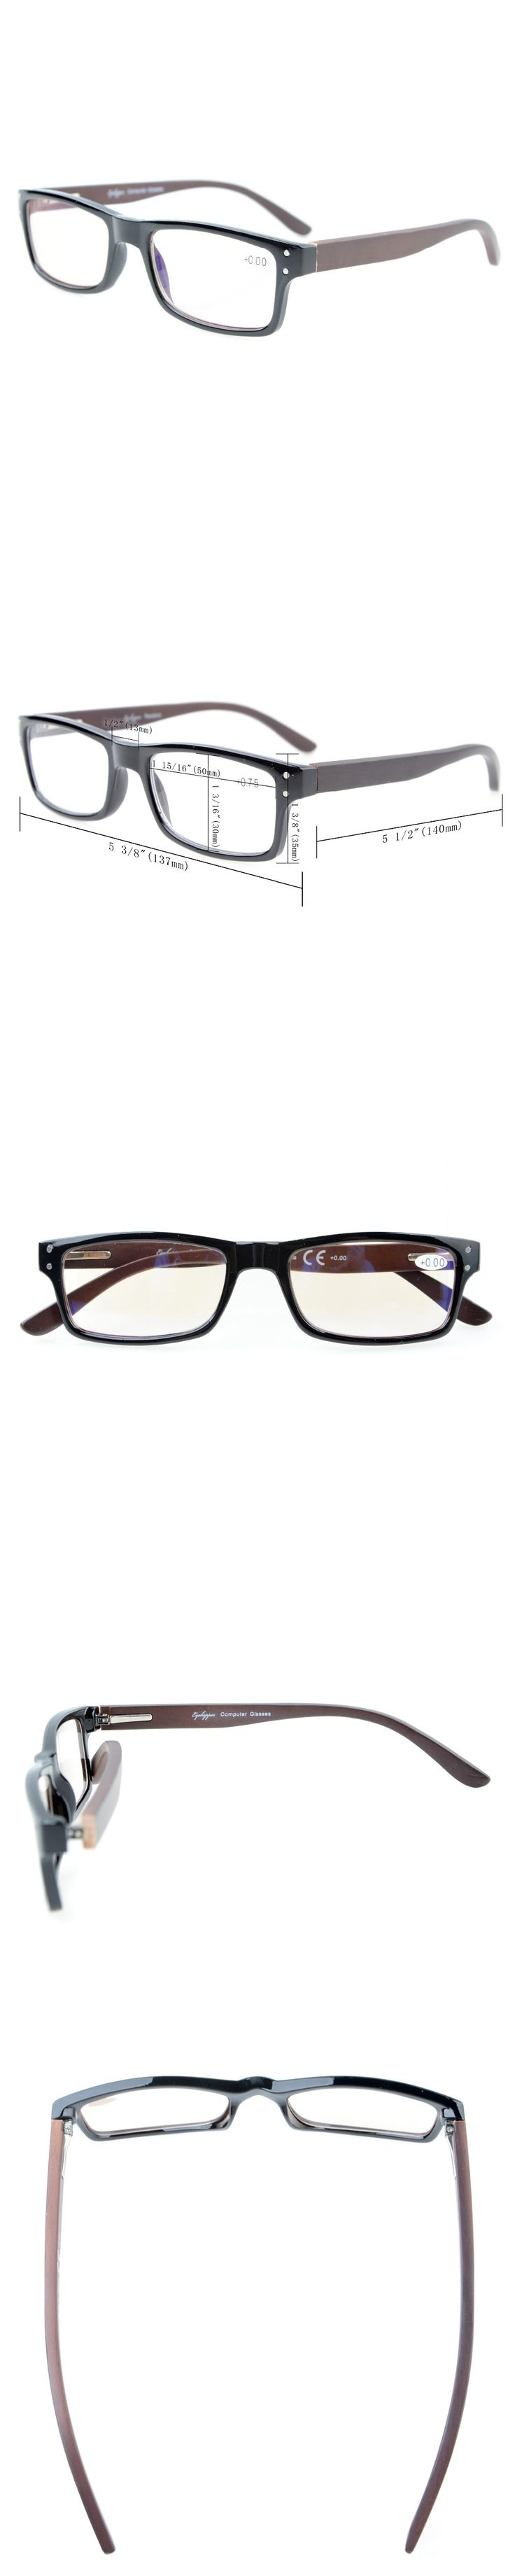 CG007 Eyekepper Computer Readers Quality Spring Hinges Wood Arms Mens Womens Amber Tinted Computer Reading Glasses +0.00---+4.00